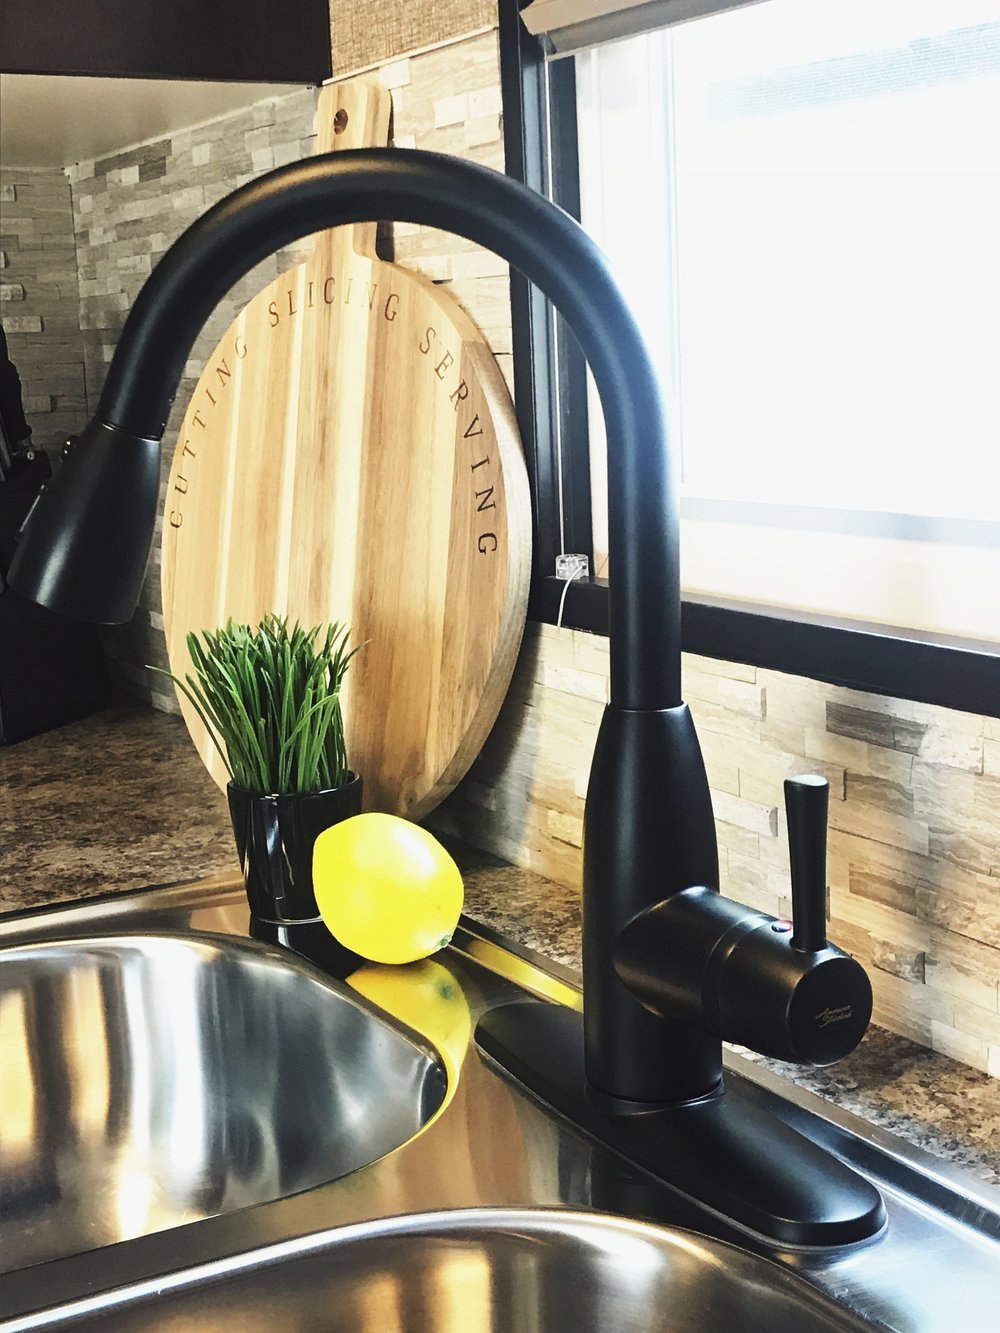 American Standard Fairbury Faucet in a matter black finish